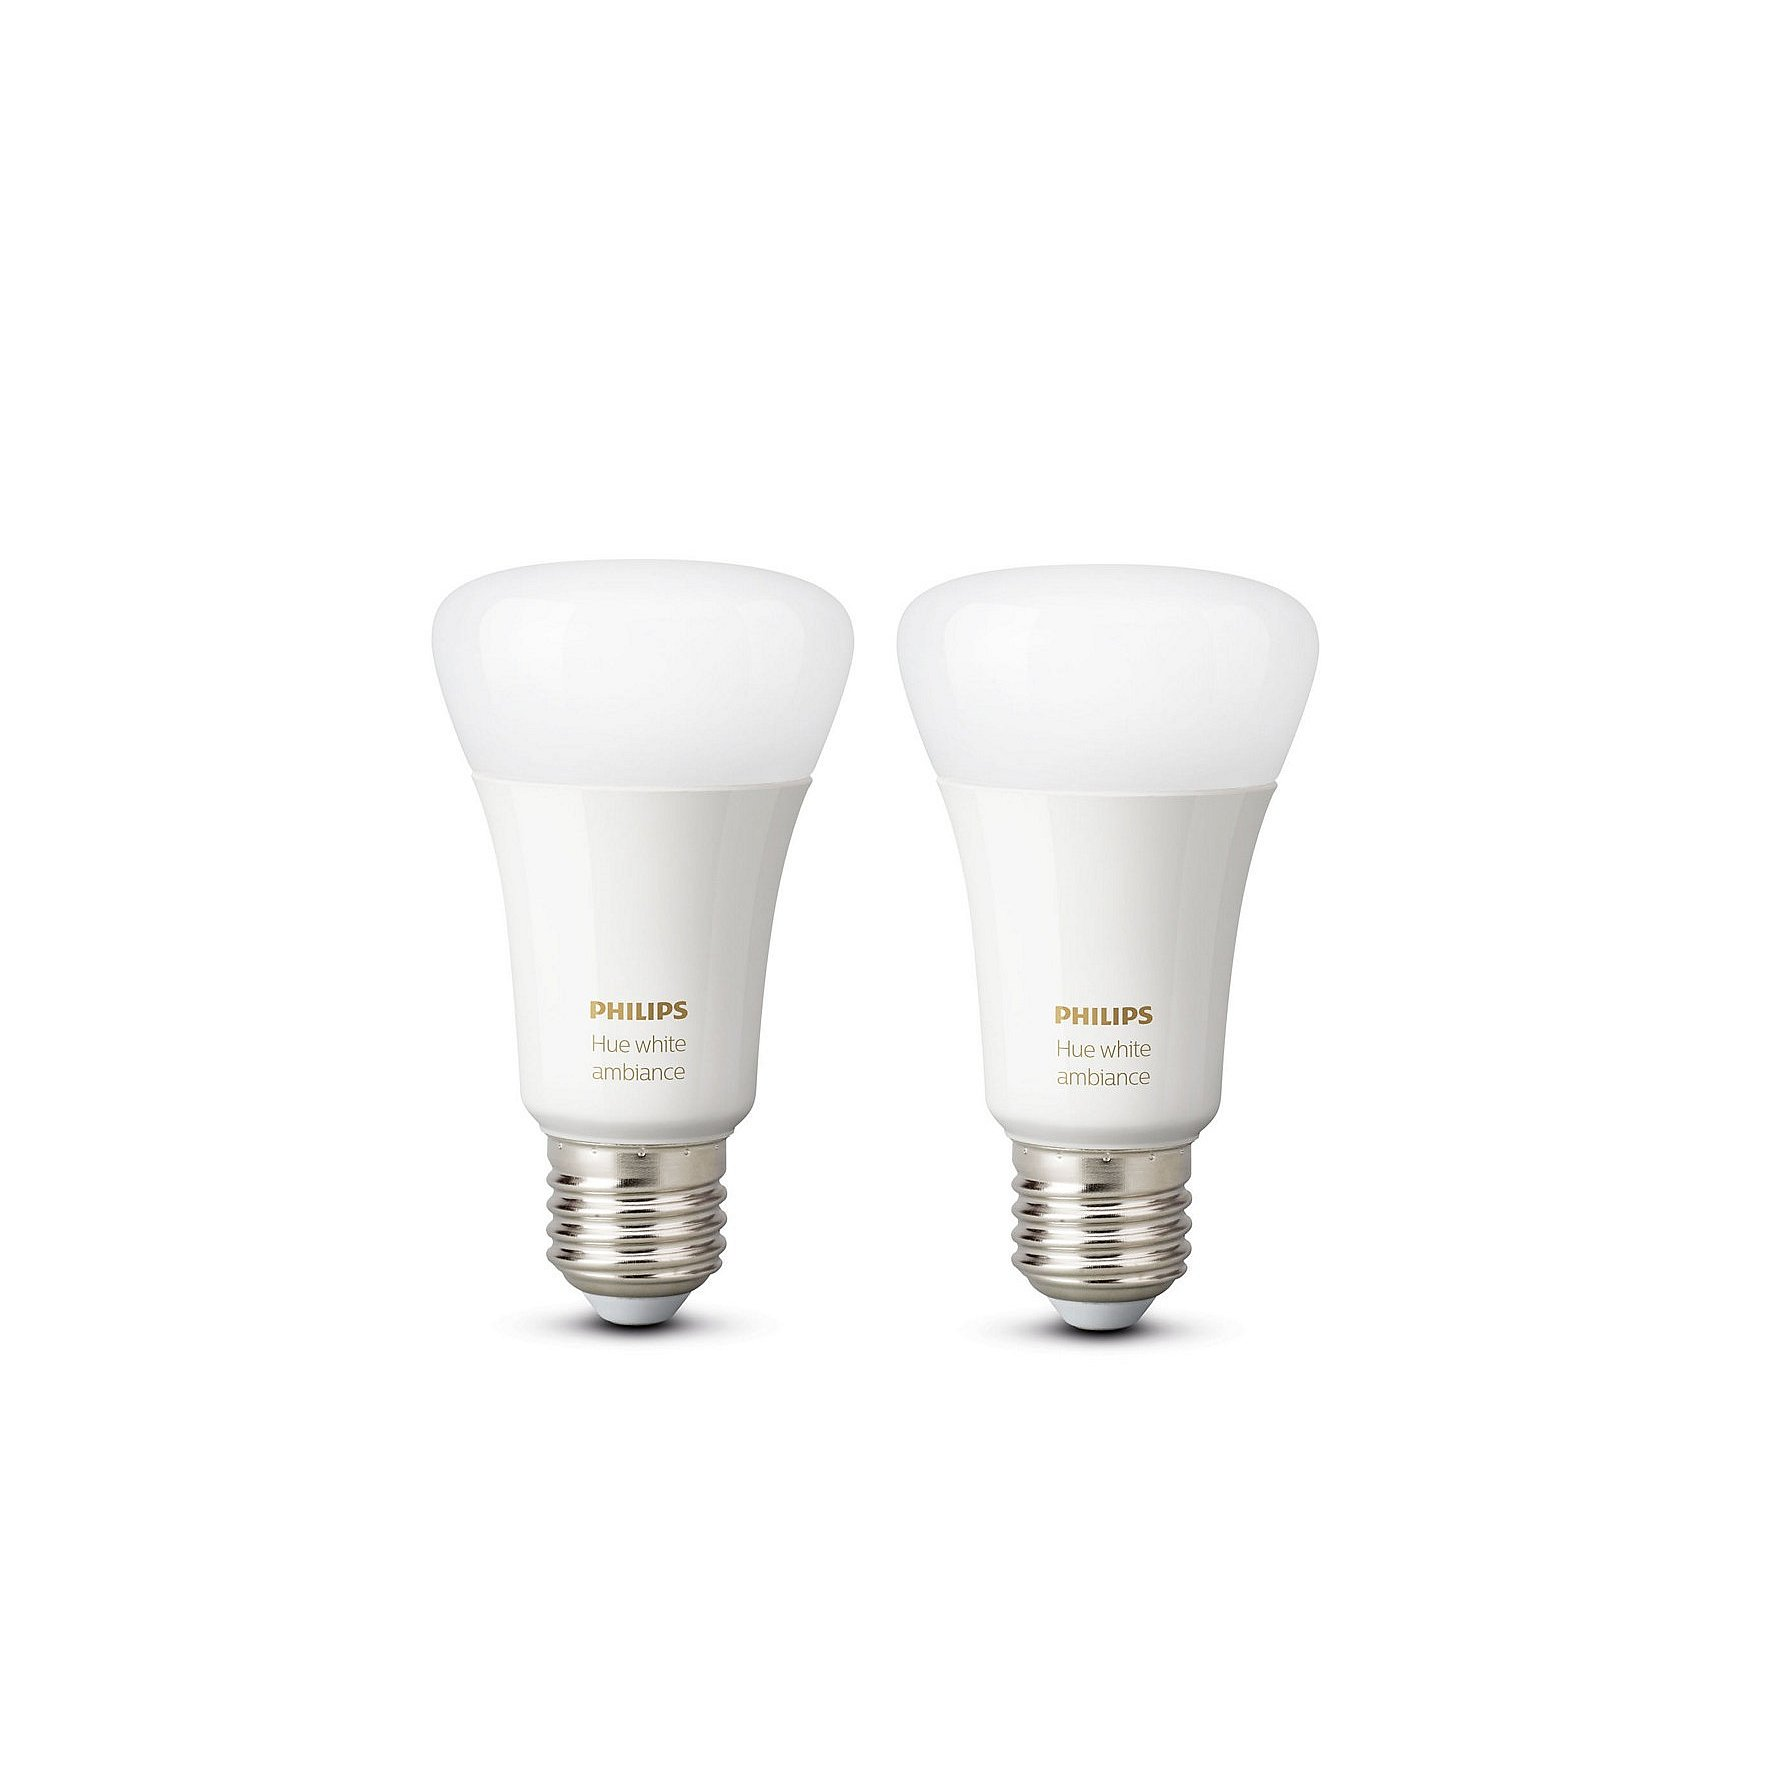 Sada LED žárovek Philips Hue white ambiance 2 ks E27 9,5W